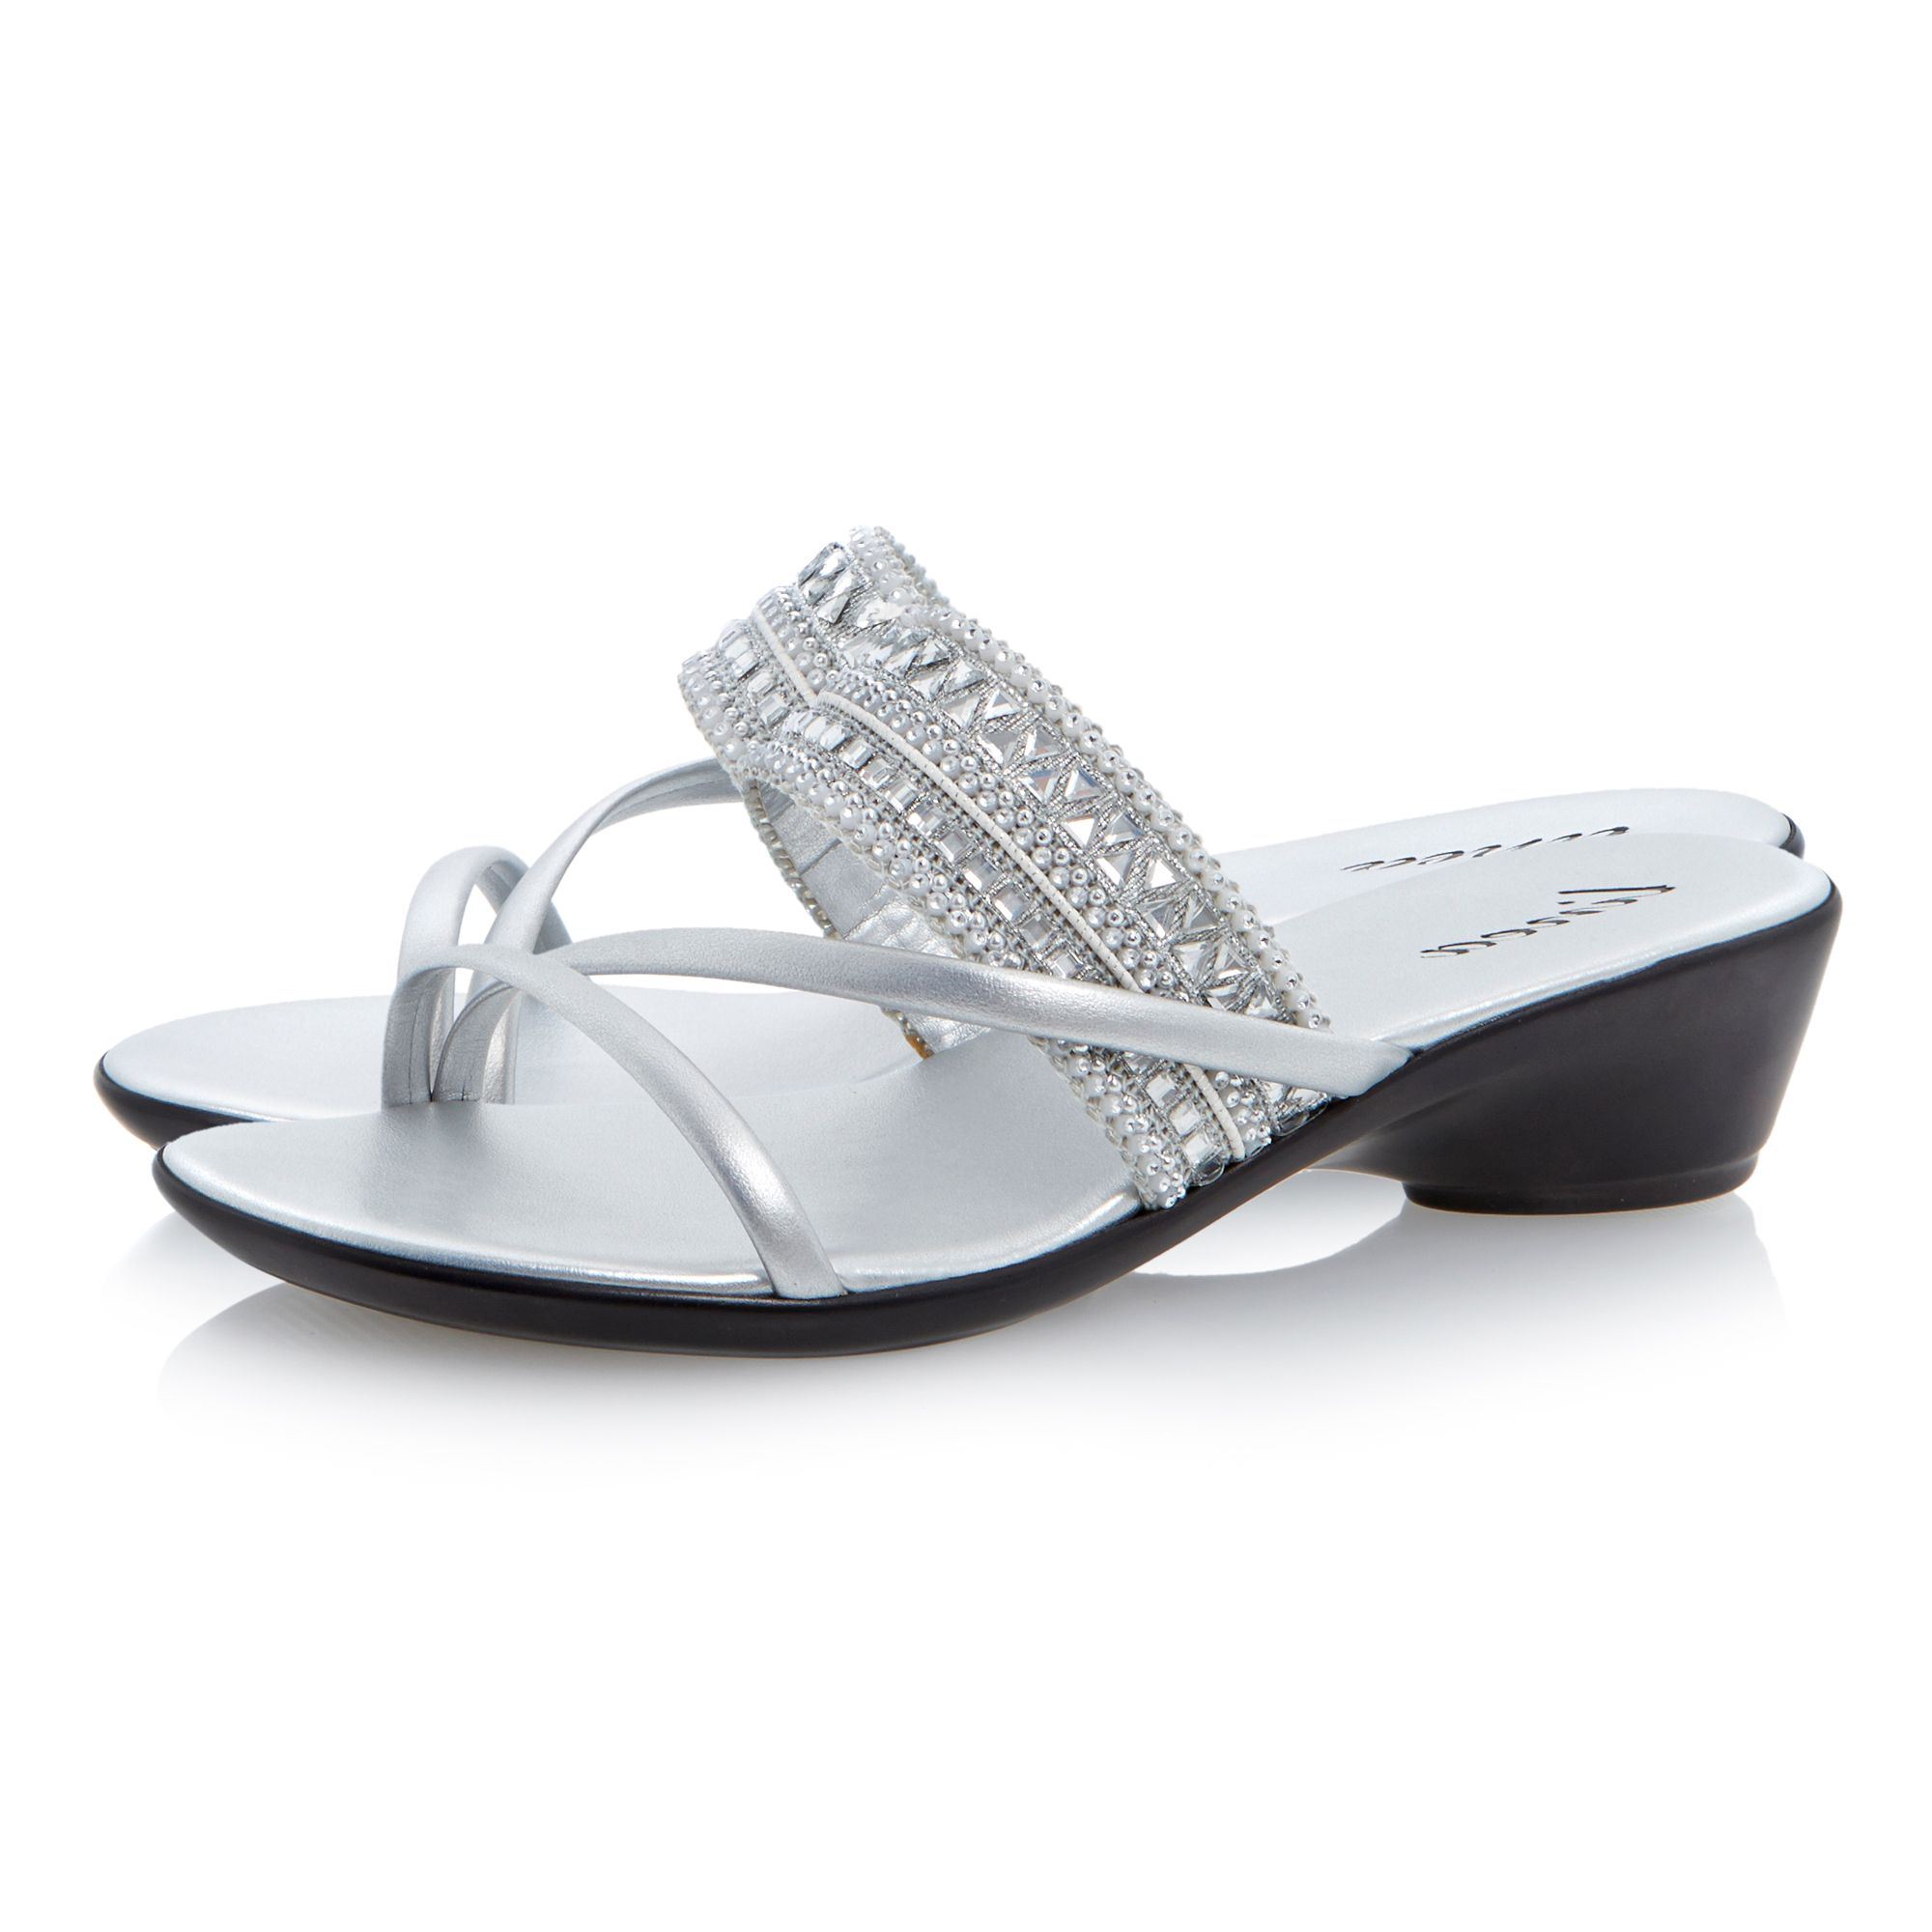 Grayas wedge heel sandals